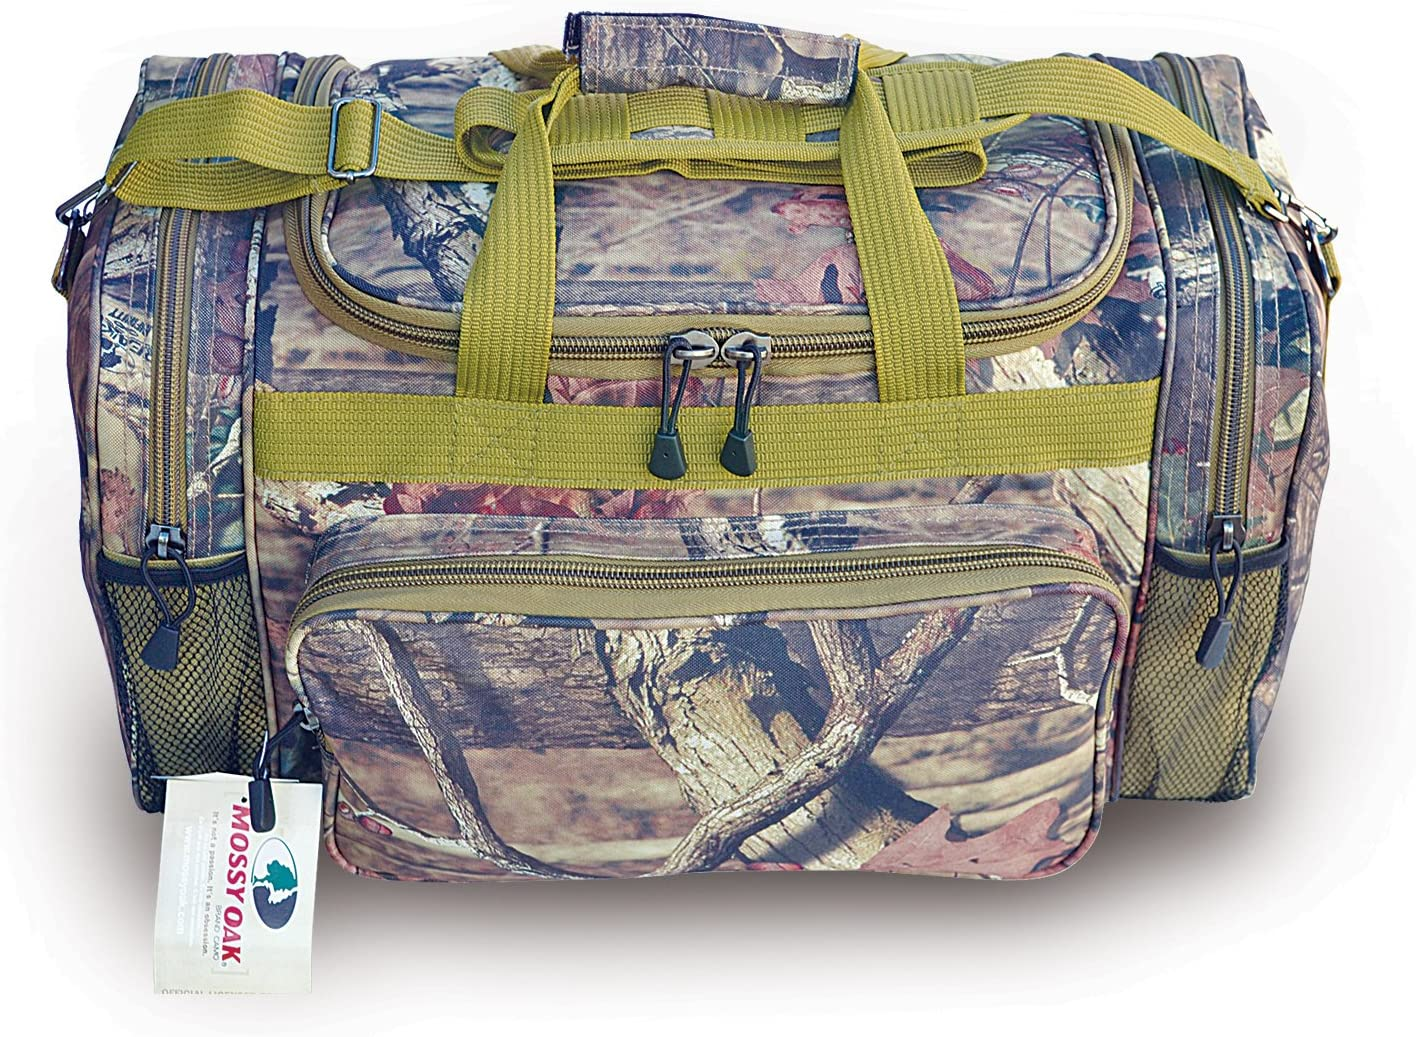 Explorer Mossy Oak -Realtree Like- Hunting Camo Heavy Duty Duffel Bag – Luggage Travel Gear Bag- Removable Shoulder Strap